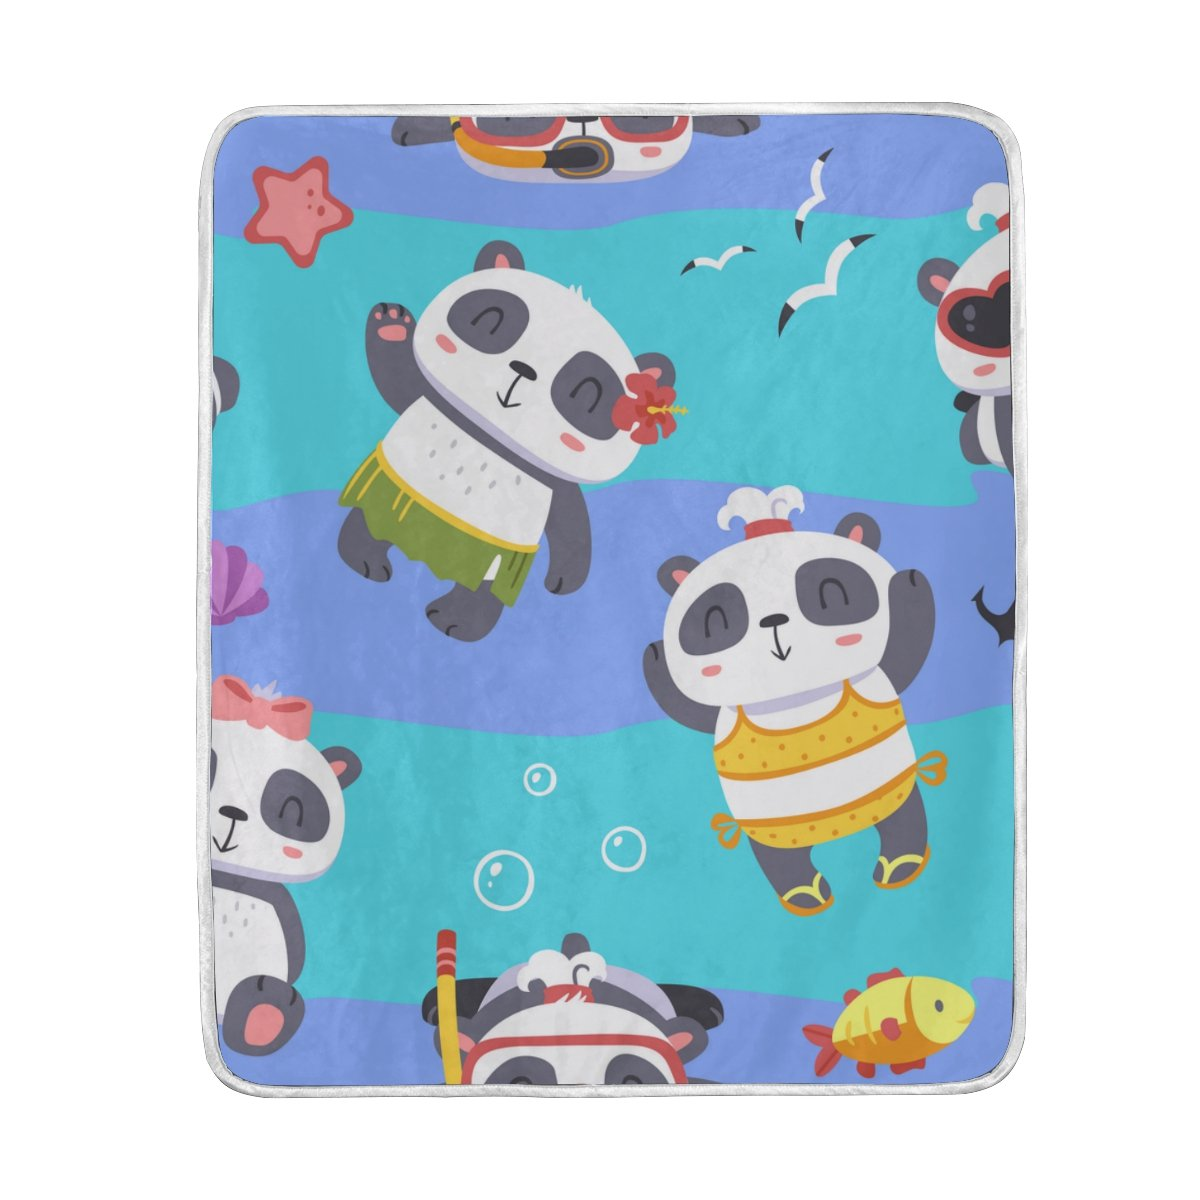 My Little Nest Warm Throw Blanket Panda Lightweight Microfiber Soft Blanket Everyday Use for Bed Couch Sofa 50'' x 60'' by My Little Nest